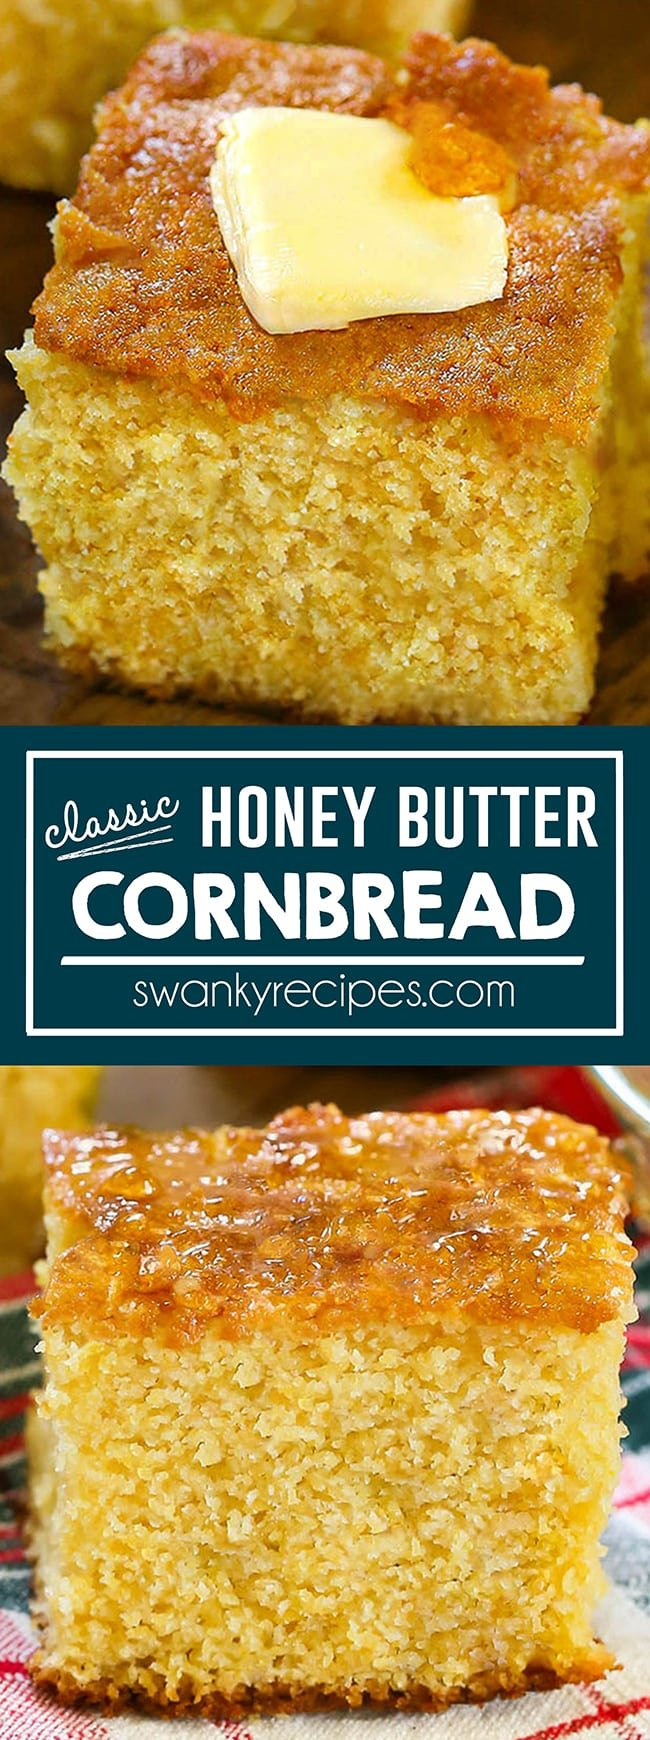 Sweet Honey Butter Cornbread - Classic southern country cornbread with supreme moistness. A dense square piece of golden cornbread with a slab of butter and honey on top served on a wooden board. Text in middle reads classic honey butter cornbread in white text with a blue background. Second photo is a front view of yellow cornbread with a shiny honey topping on the crust. Serve on a red, green, and white striped napkin and wooden board with cornbread in the background.